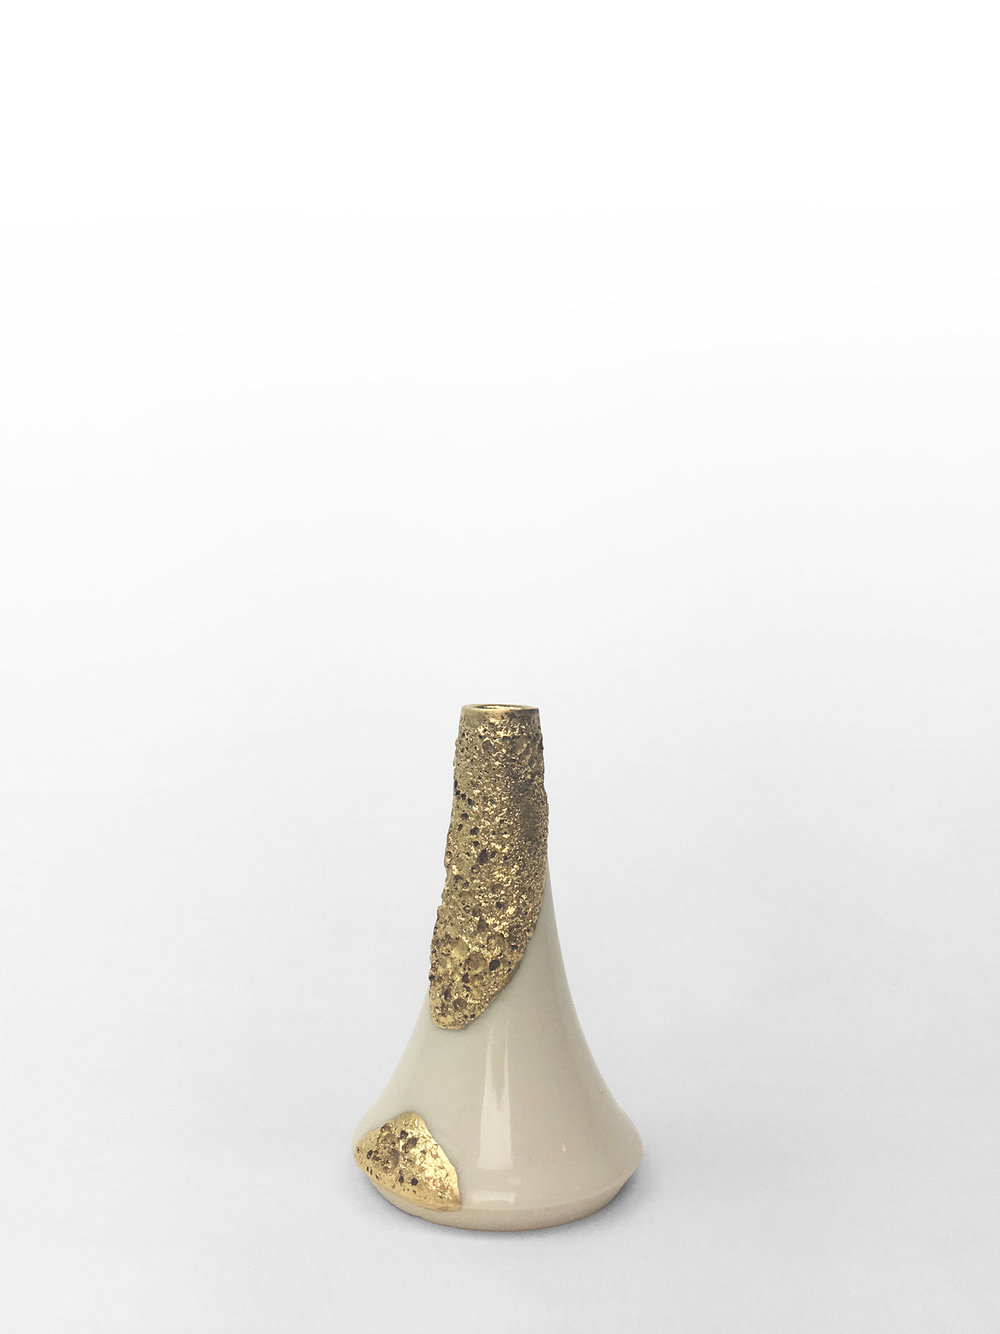 "Small volcano vase, hand-thrown porcelain with gold luster froth, 4"" x 2 1/2"", $140"